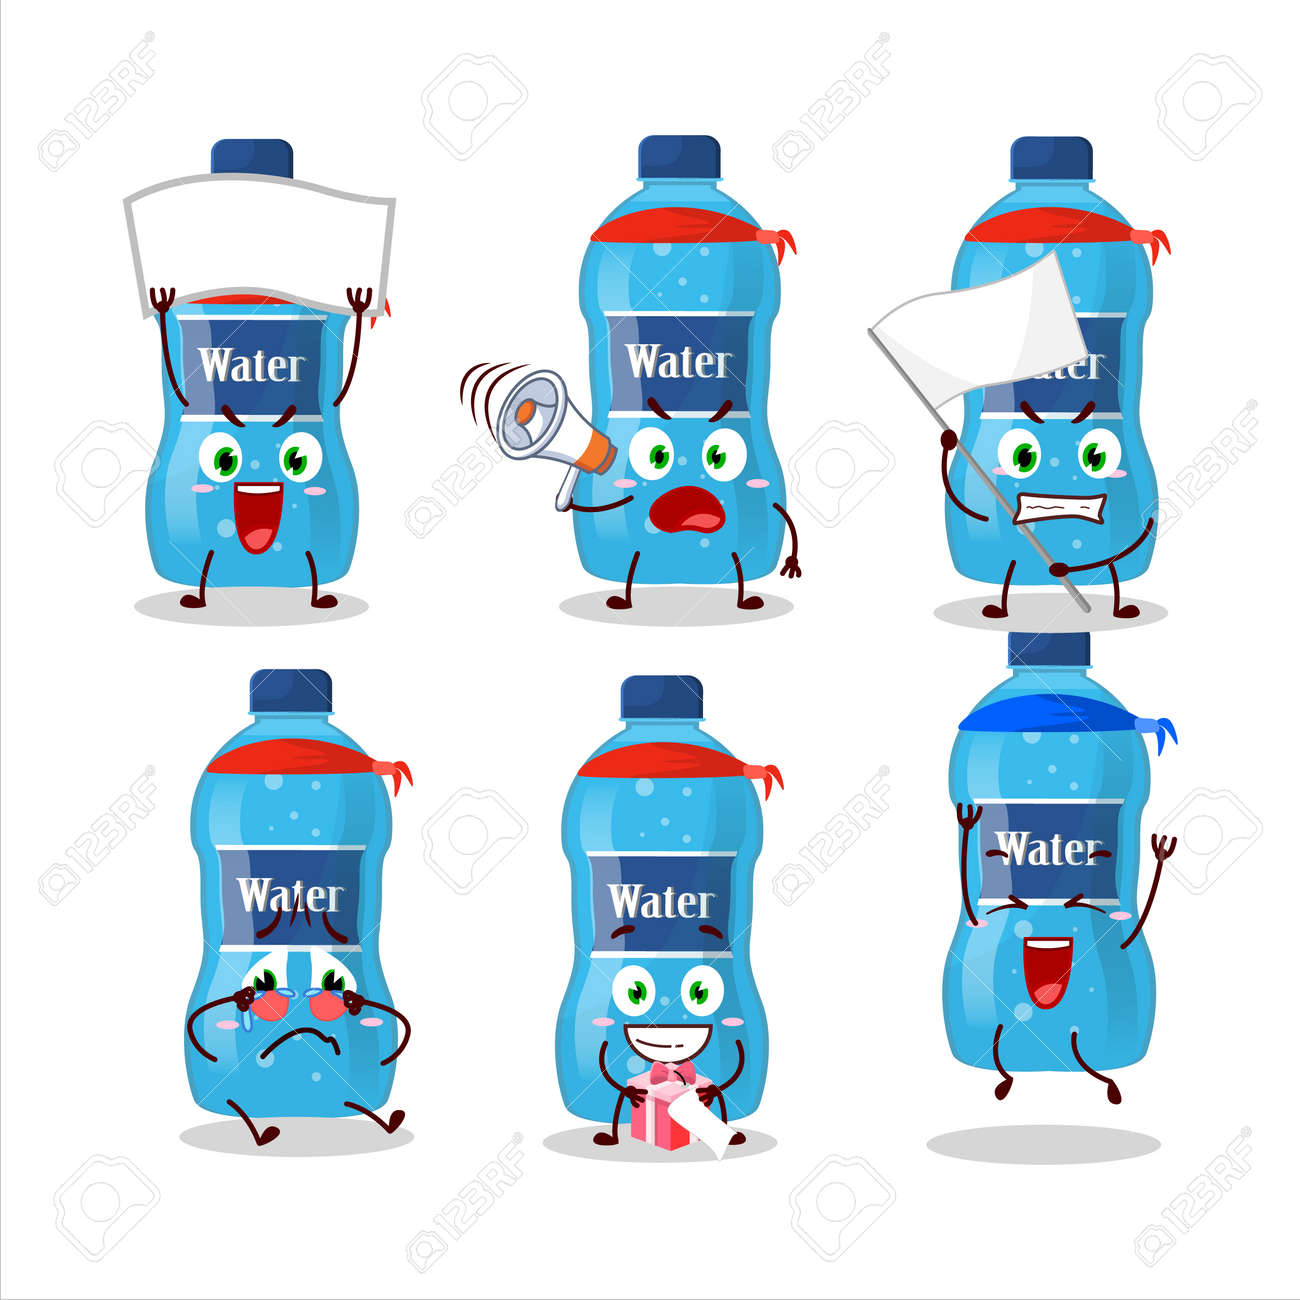 Mascot design style of water bottle character as an attractive supporter - 172515421